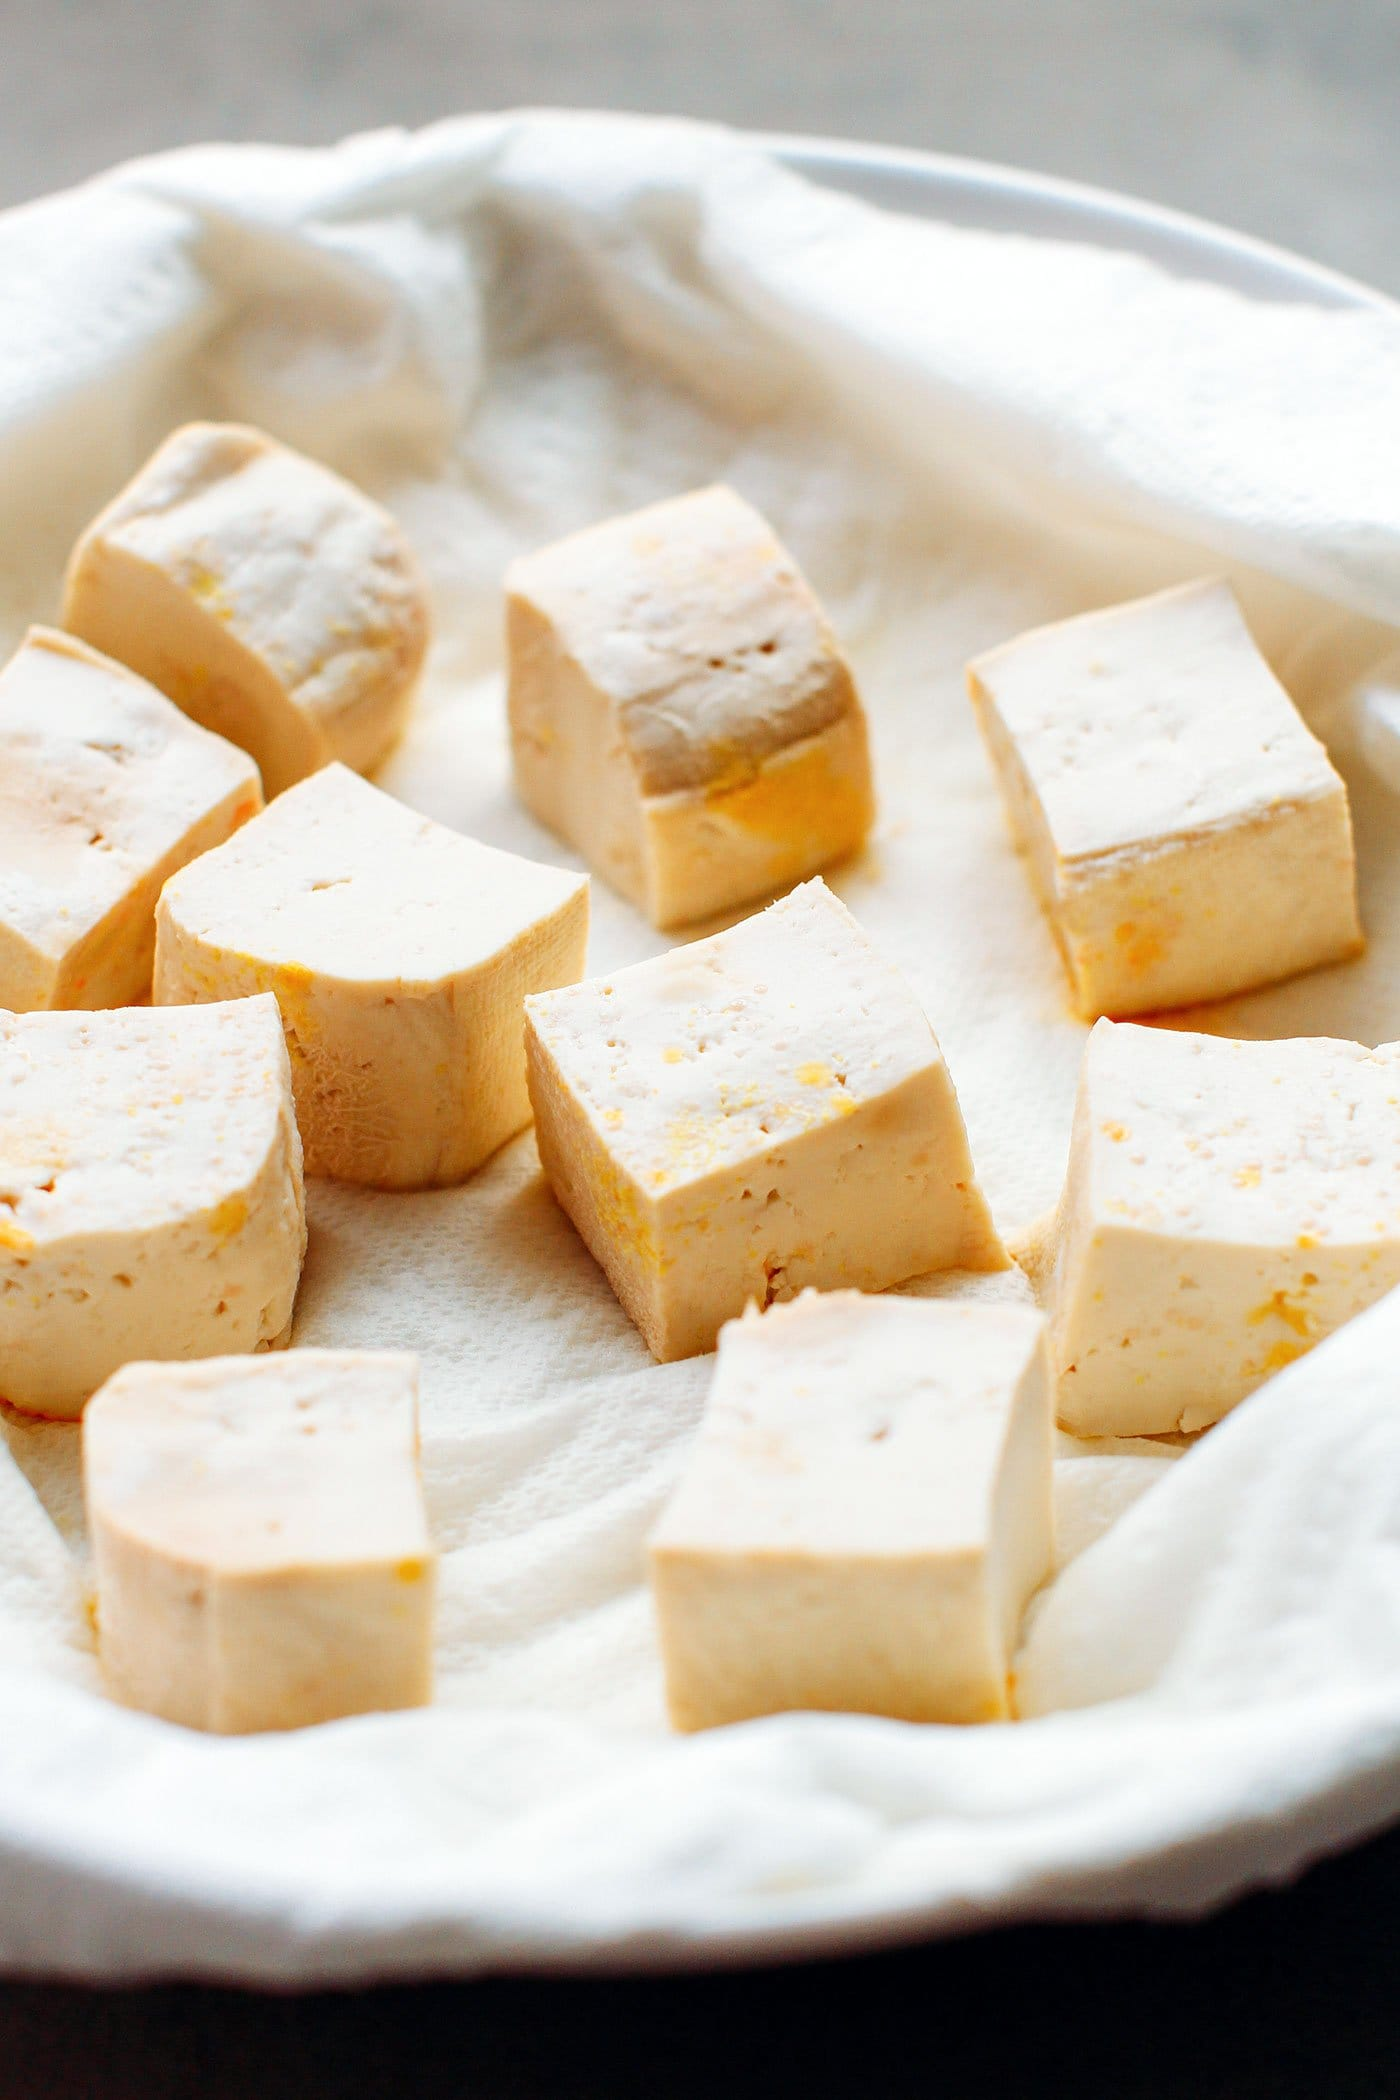 How to Make Tofu Cheese (Chao)